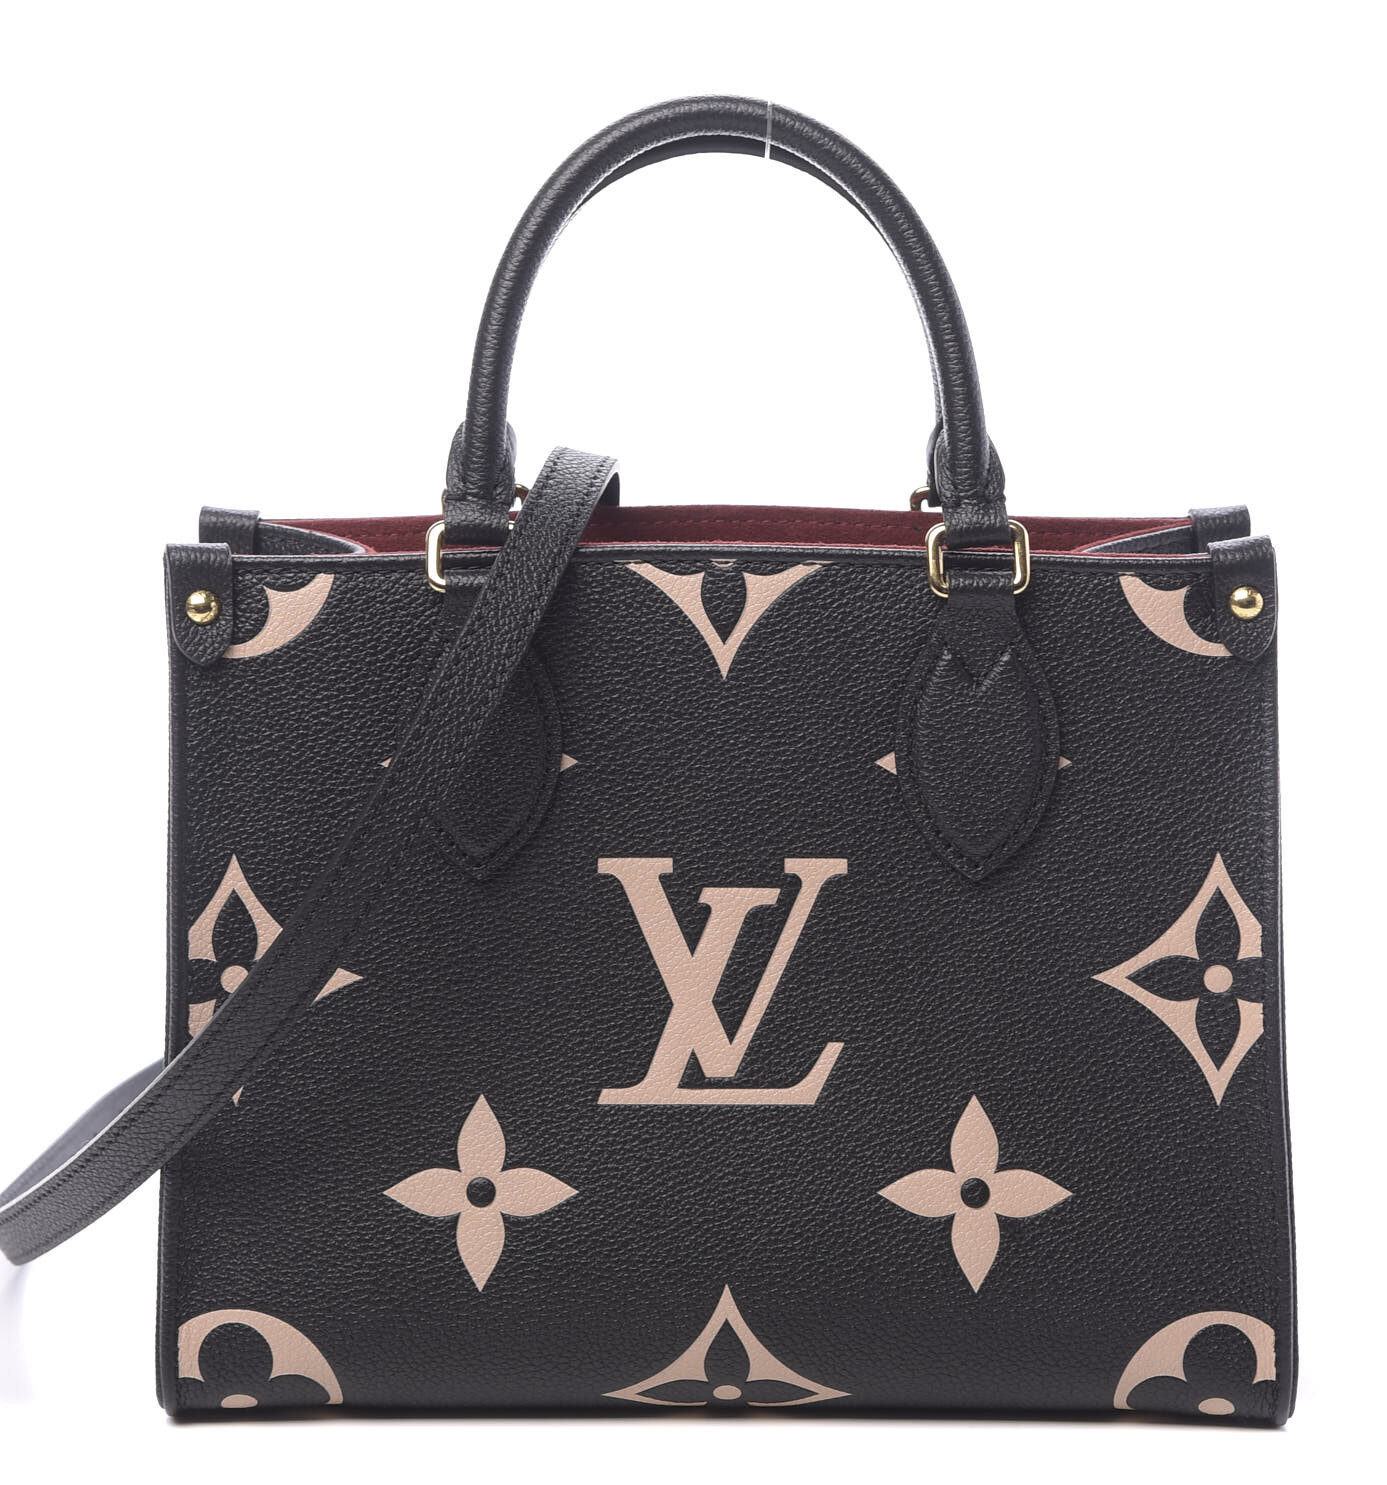 Louis Vuitton Onthego PM Empreinte Leather